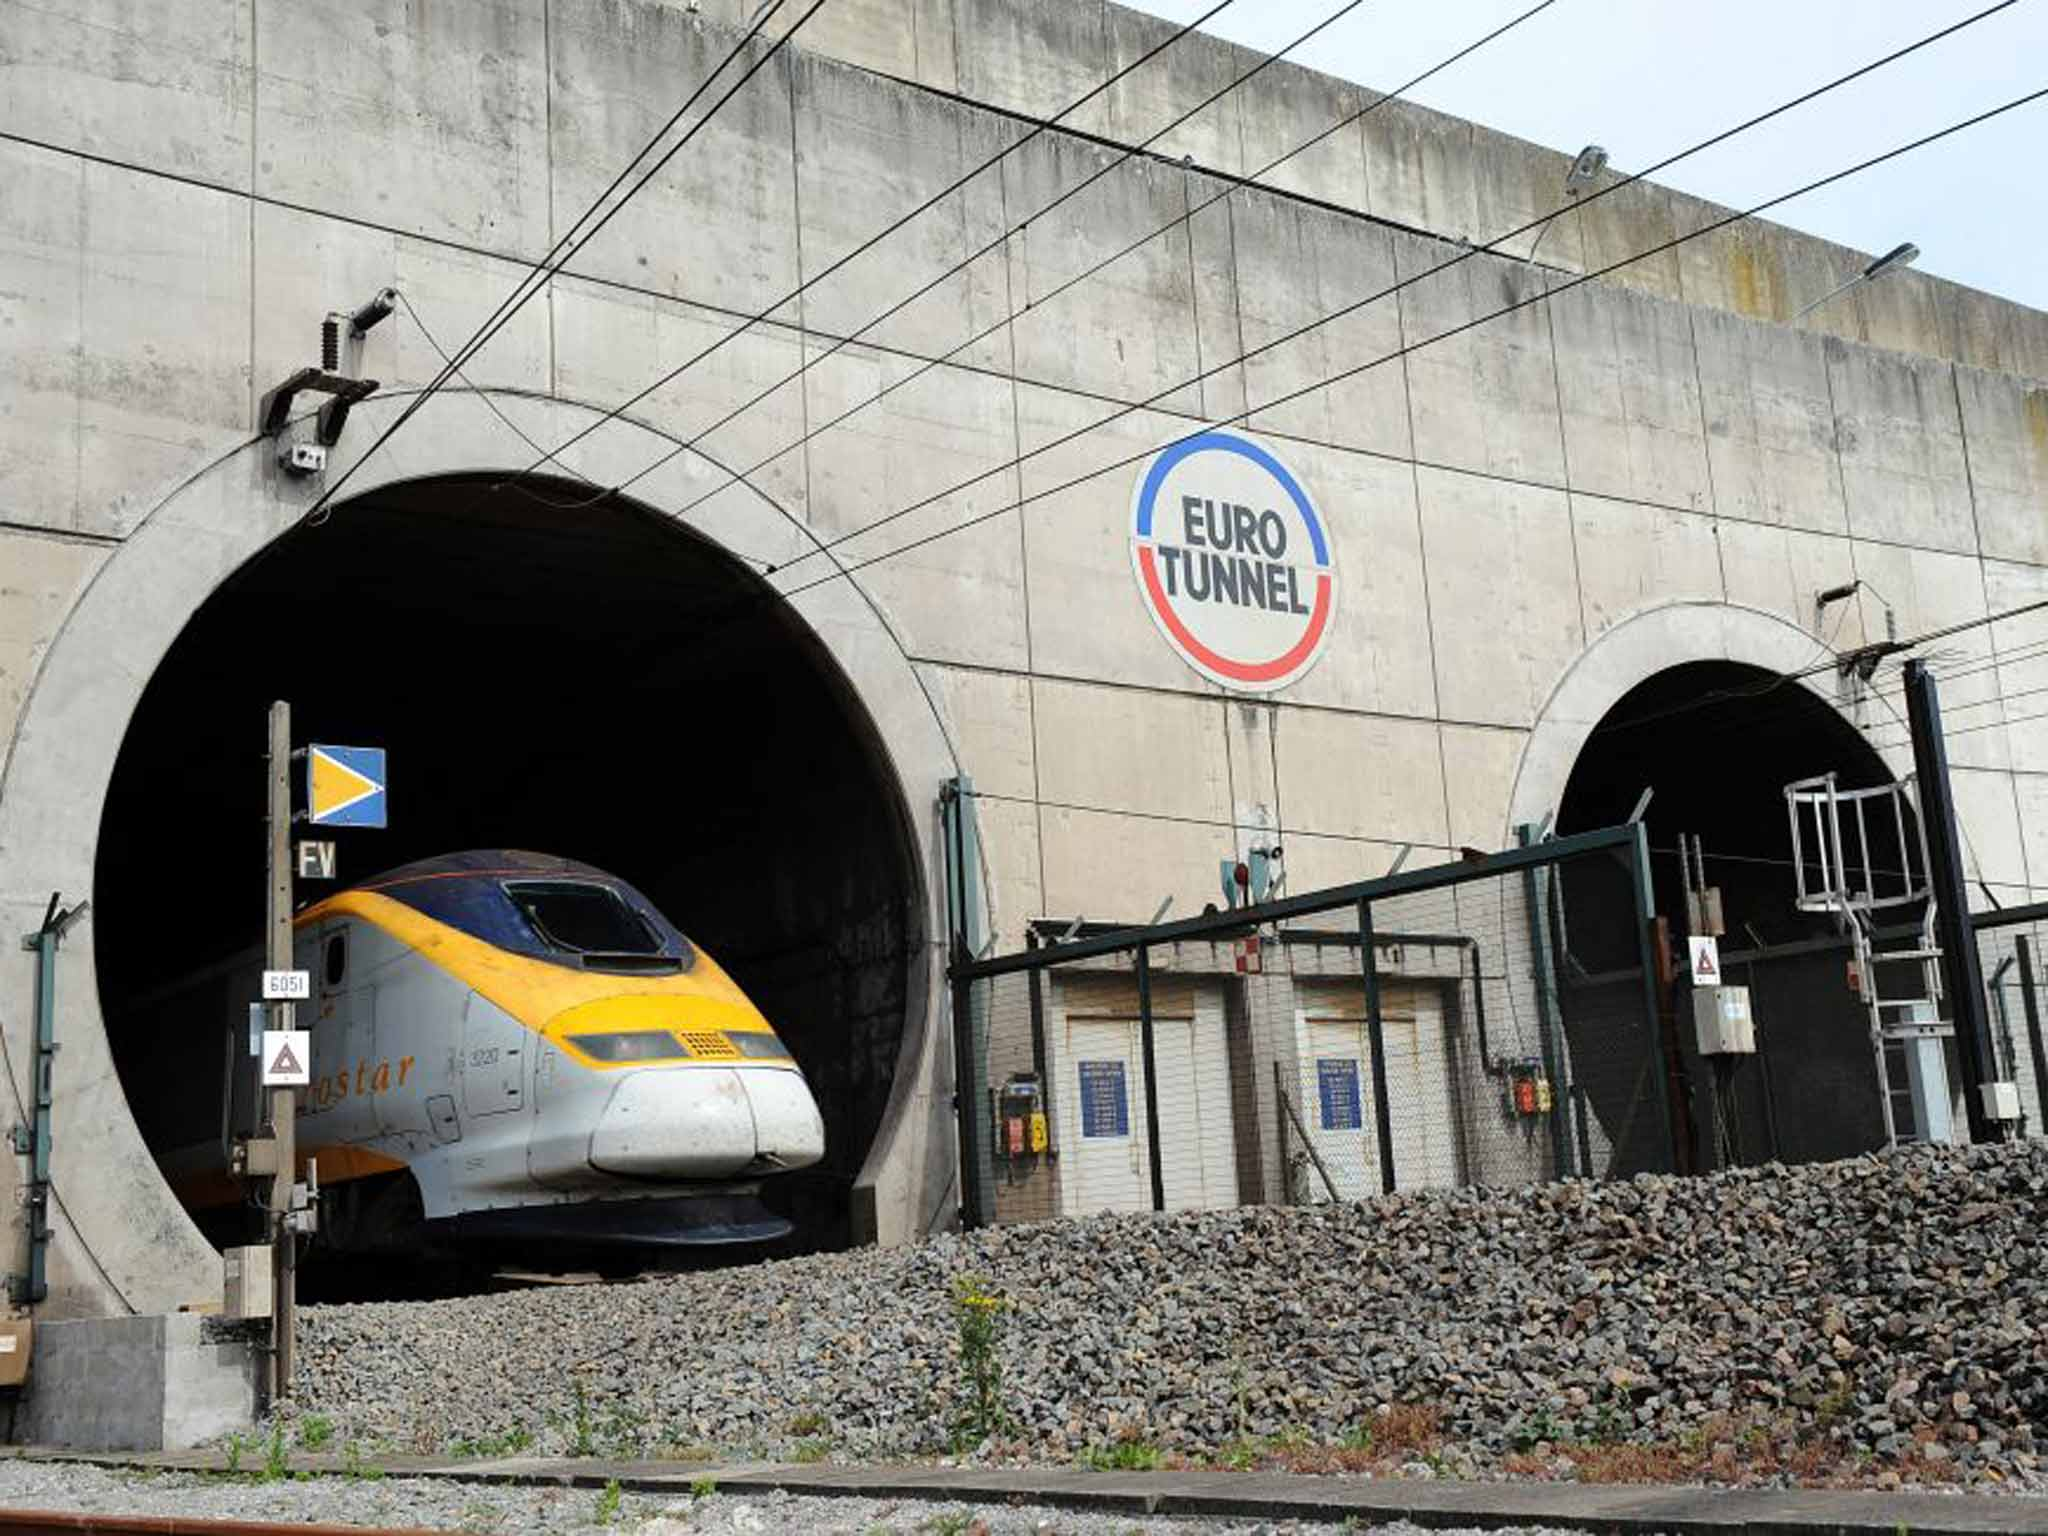 channel tunnel He is believed to be the 12th person killed in or around the channel tunnel entrance in calais since the refugee crisis erupted earlier this year.